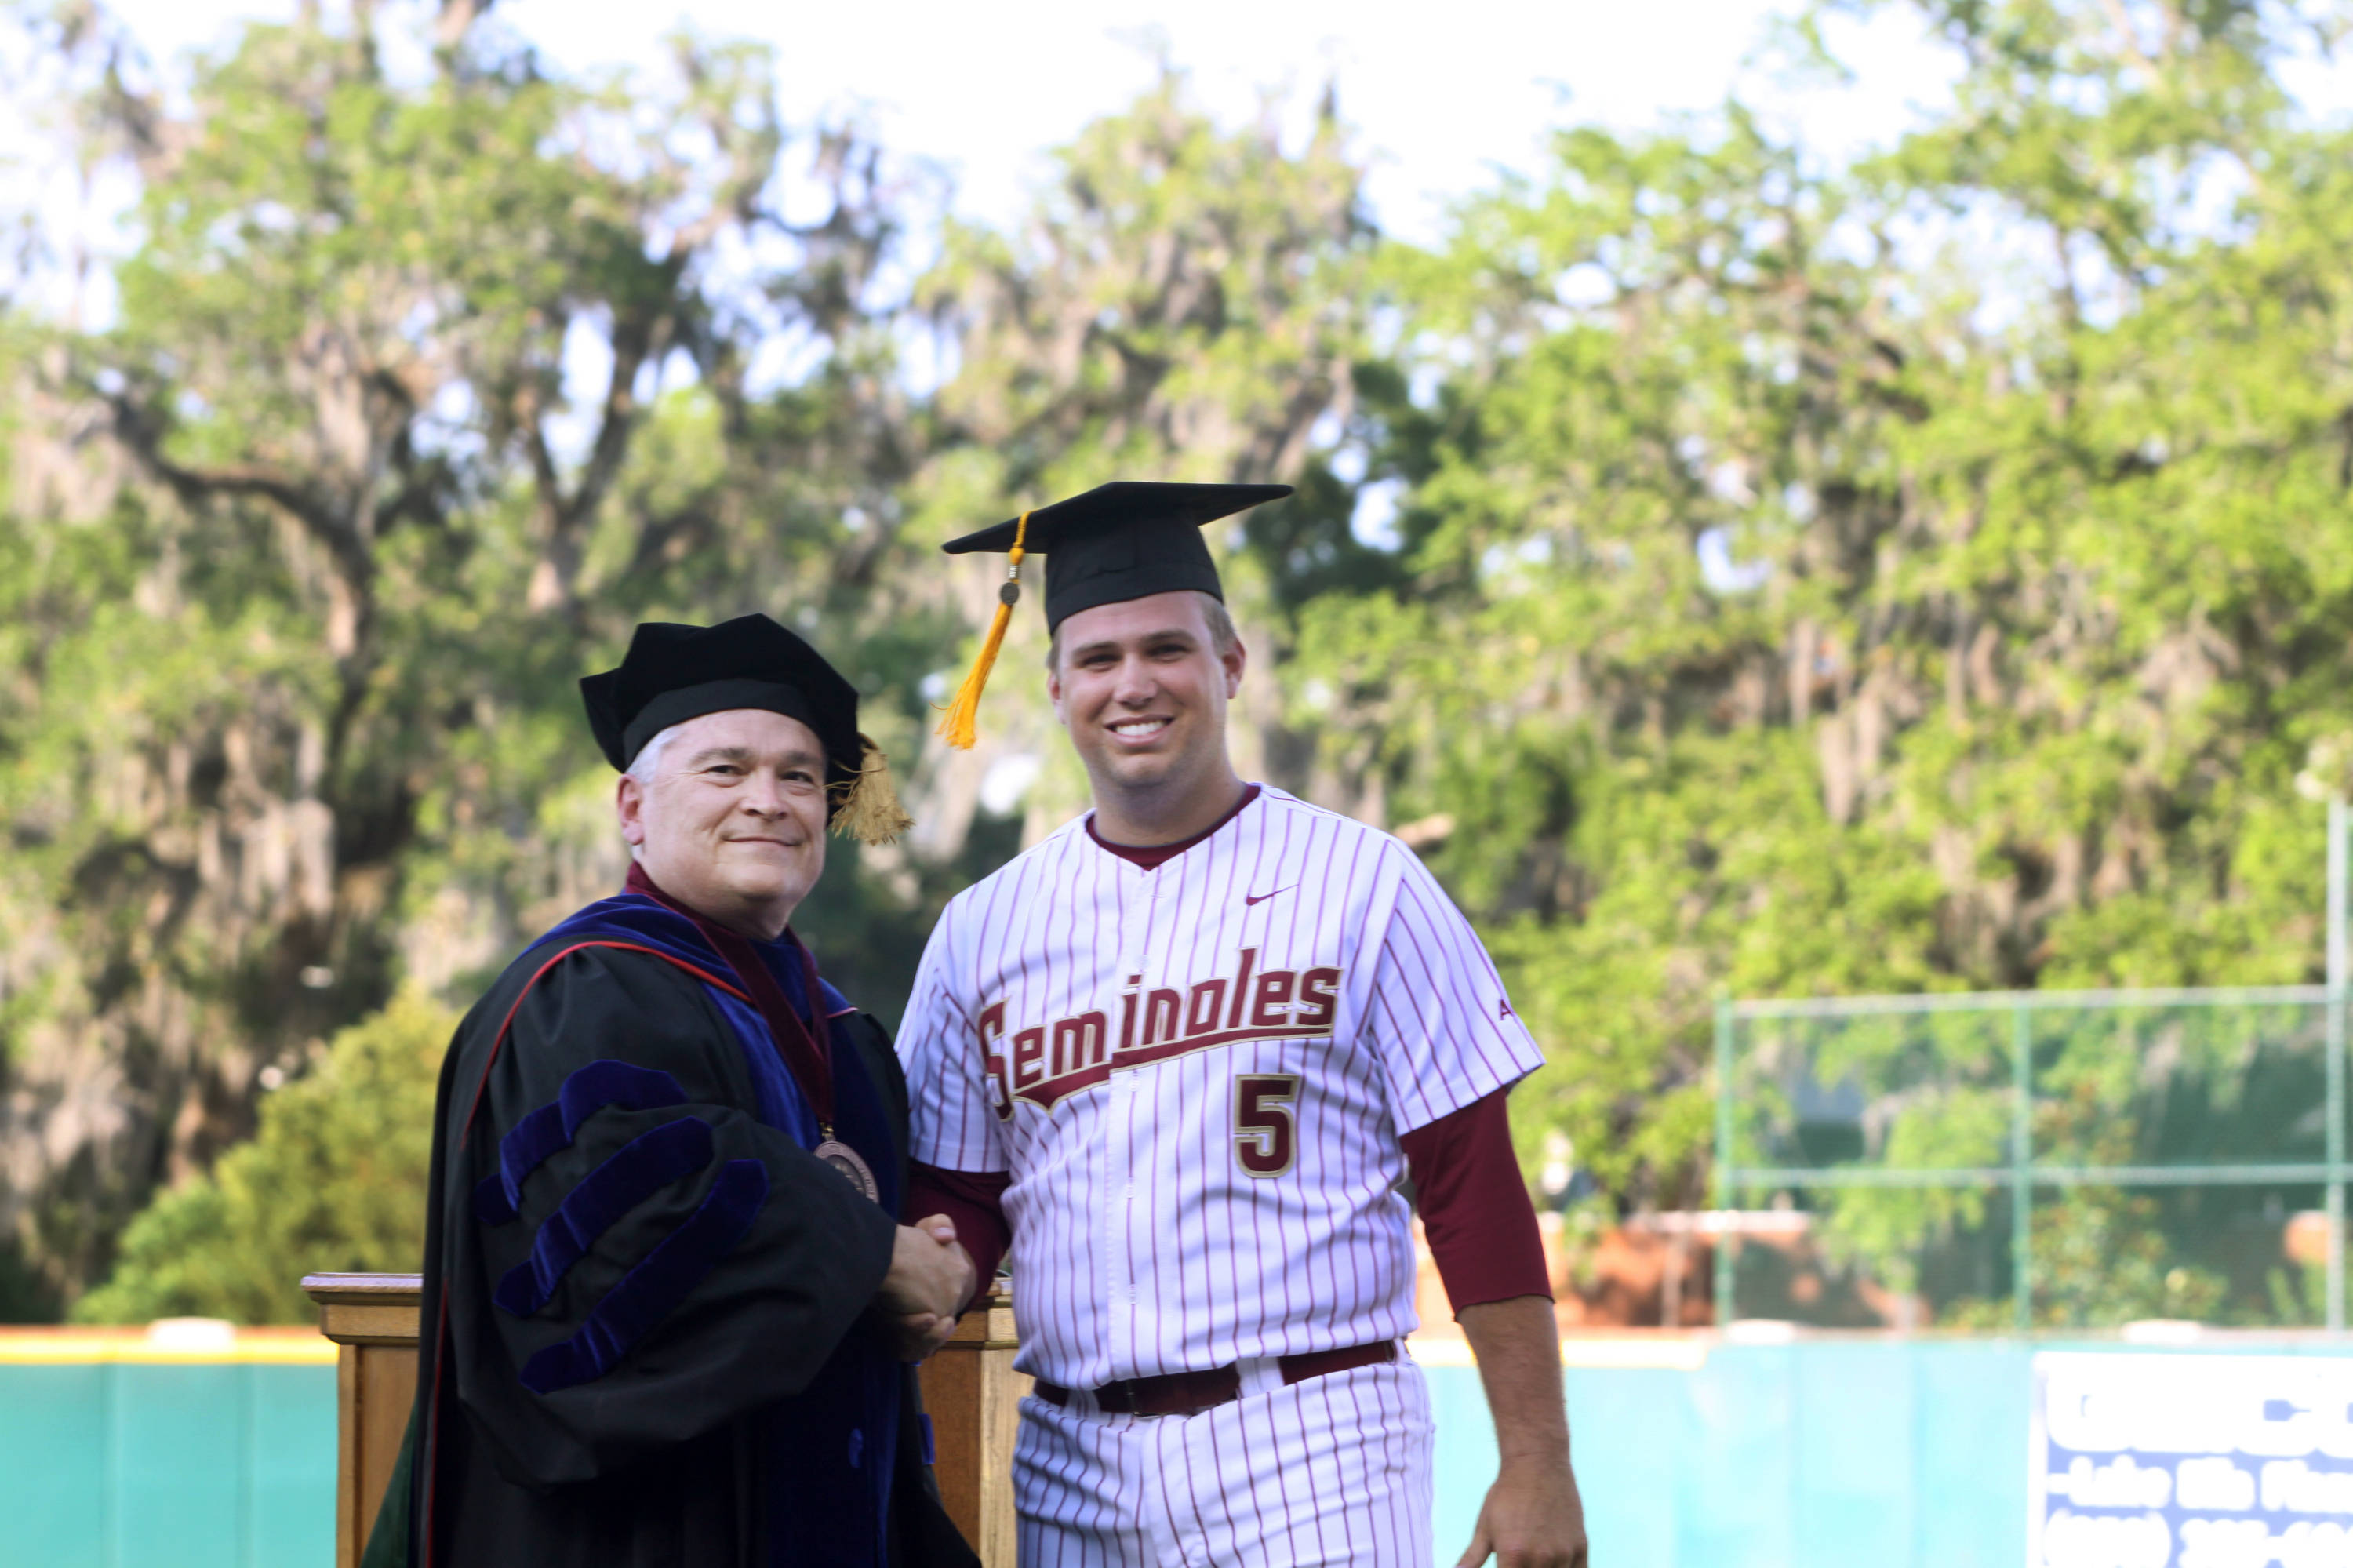 2011 Spring Graduation Ceremony held at Dick Howser Stadium to honor the graduating baseball seniors. Jack Posey (5) with President Barron